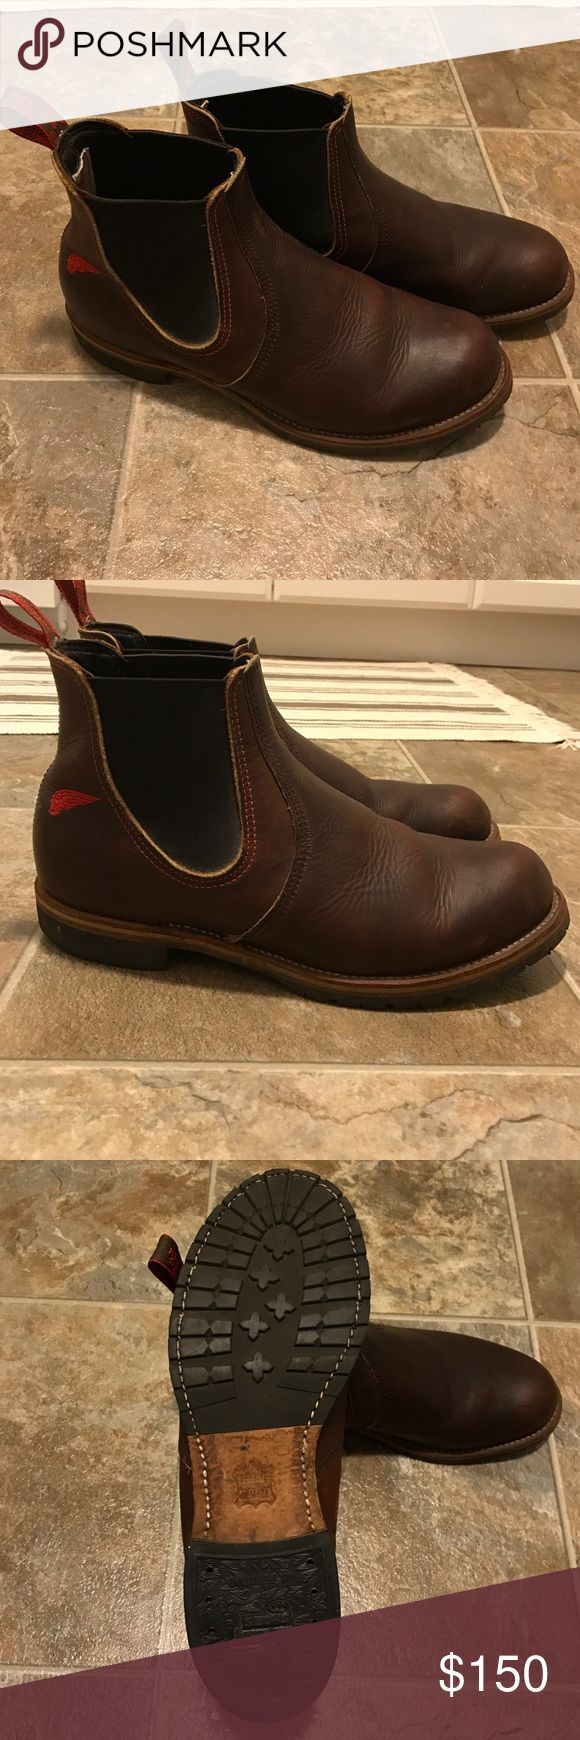 Red Wing 2917 Chelsea Rancher Boots These boots are barely worn, beautiful, excellent condition! Red Wing Shoes Shoes Boots